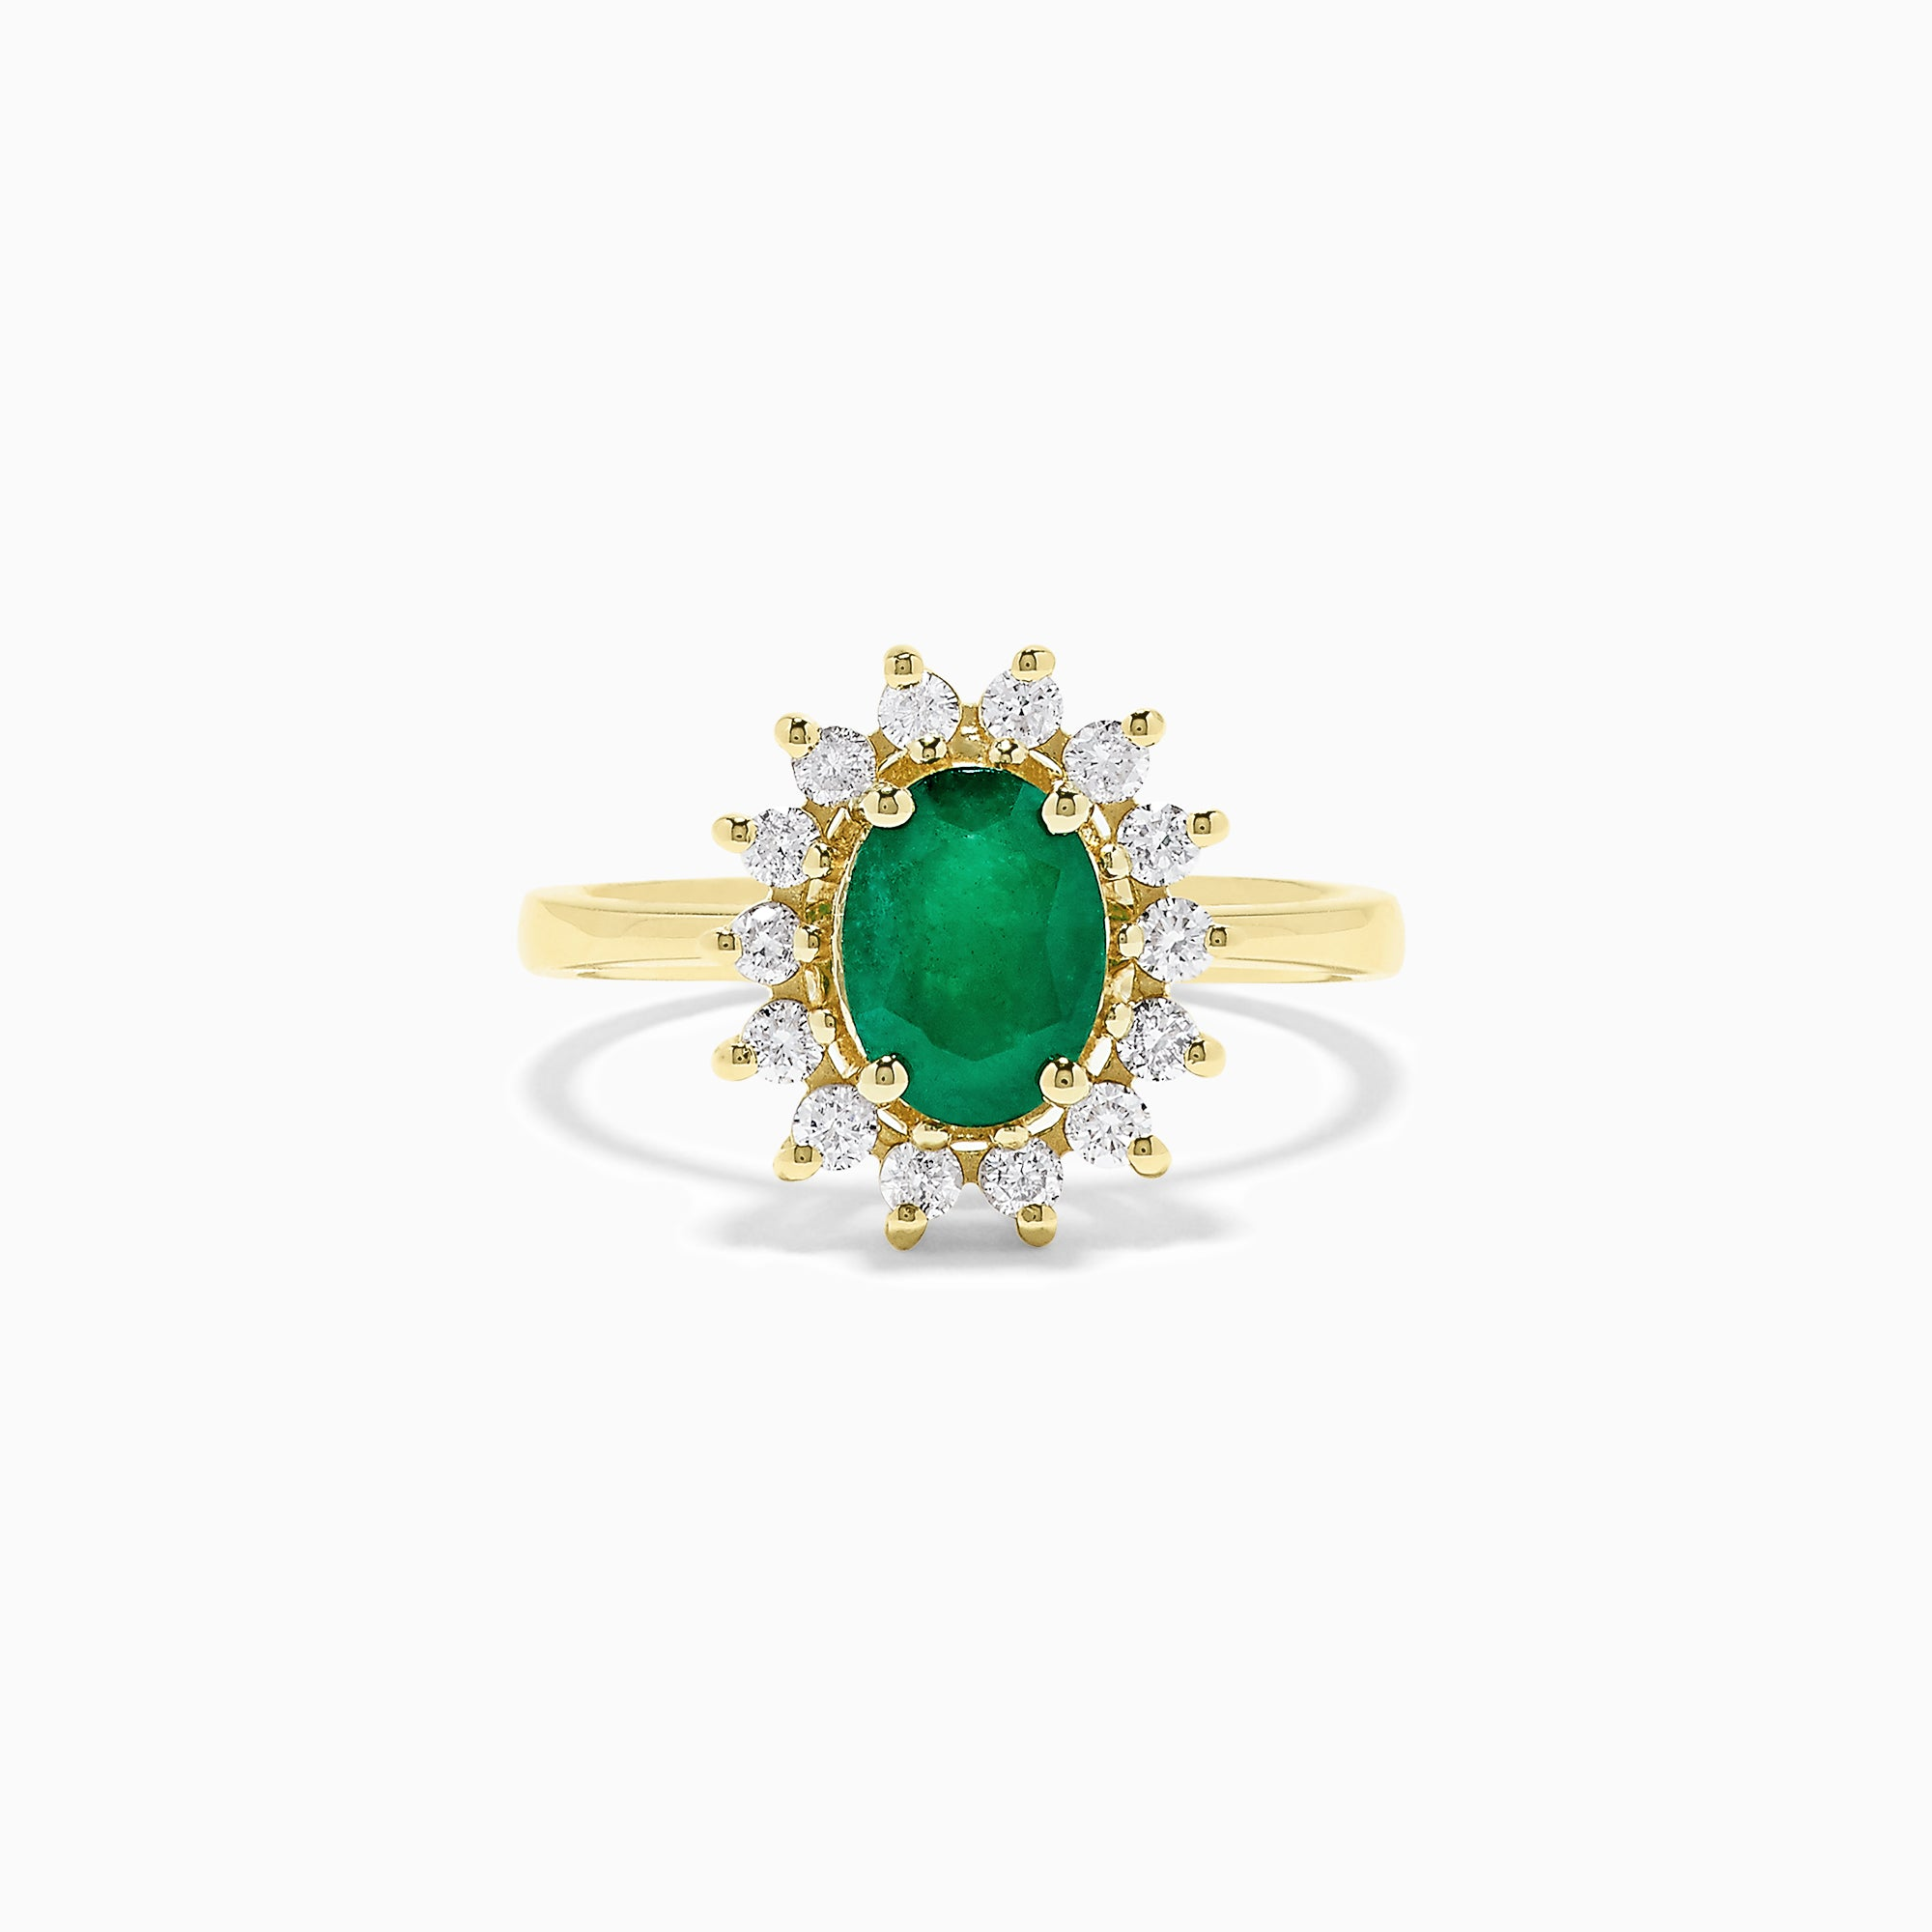 Effy 14K Yellow Gold Emerald and Diamond Ring, 1.48 TCW